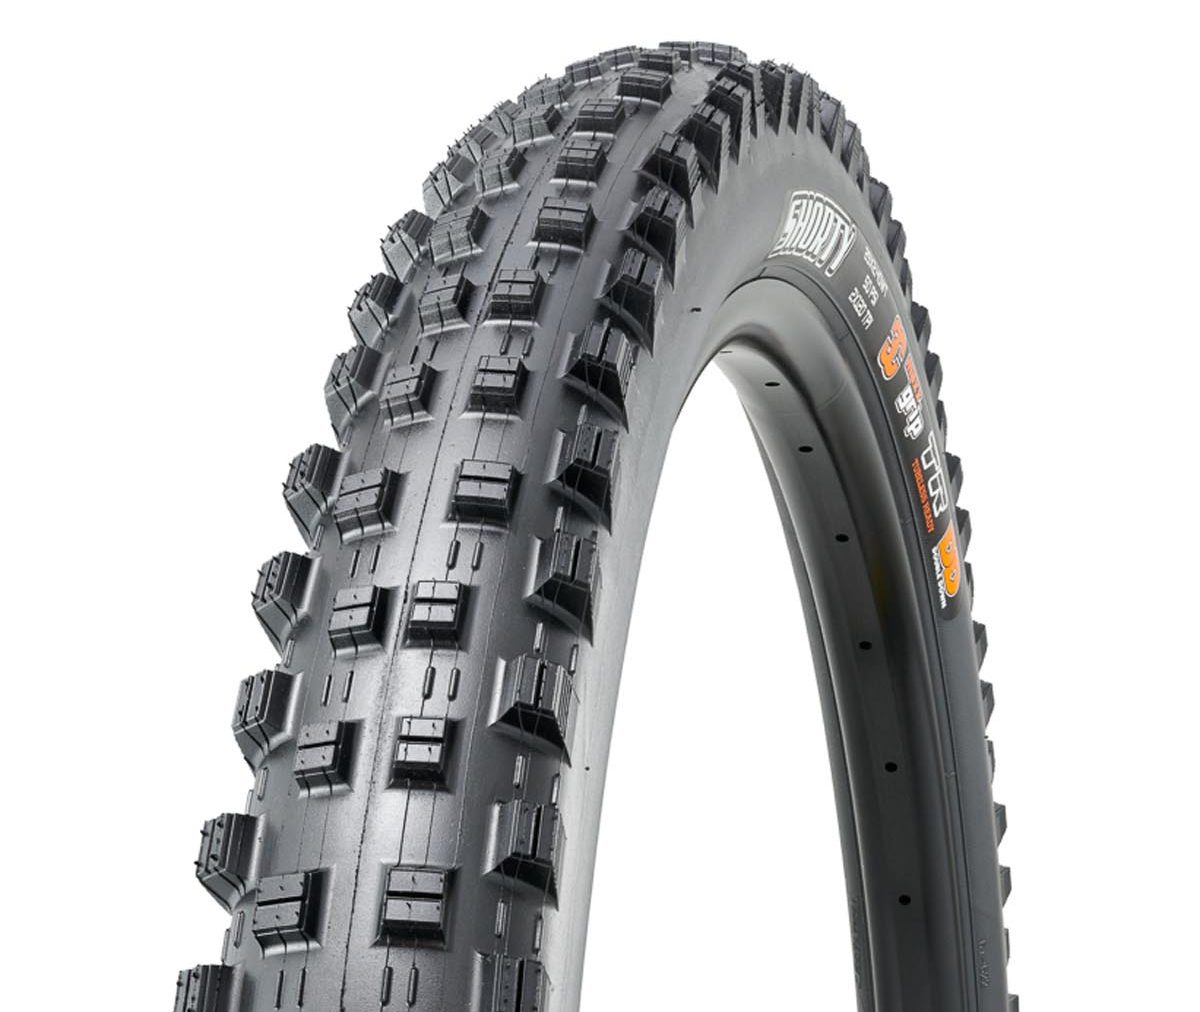 Maxxis Shorty Gen 2 MTB mid-spike mud tire tread